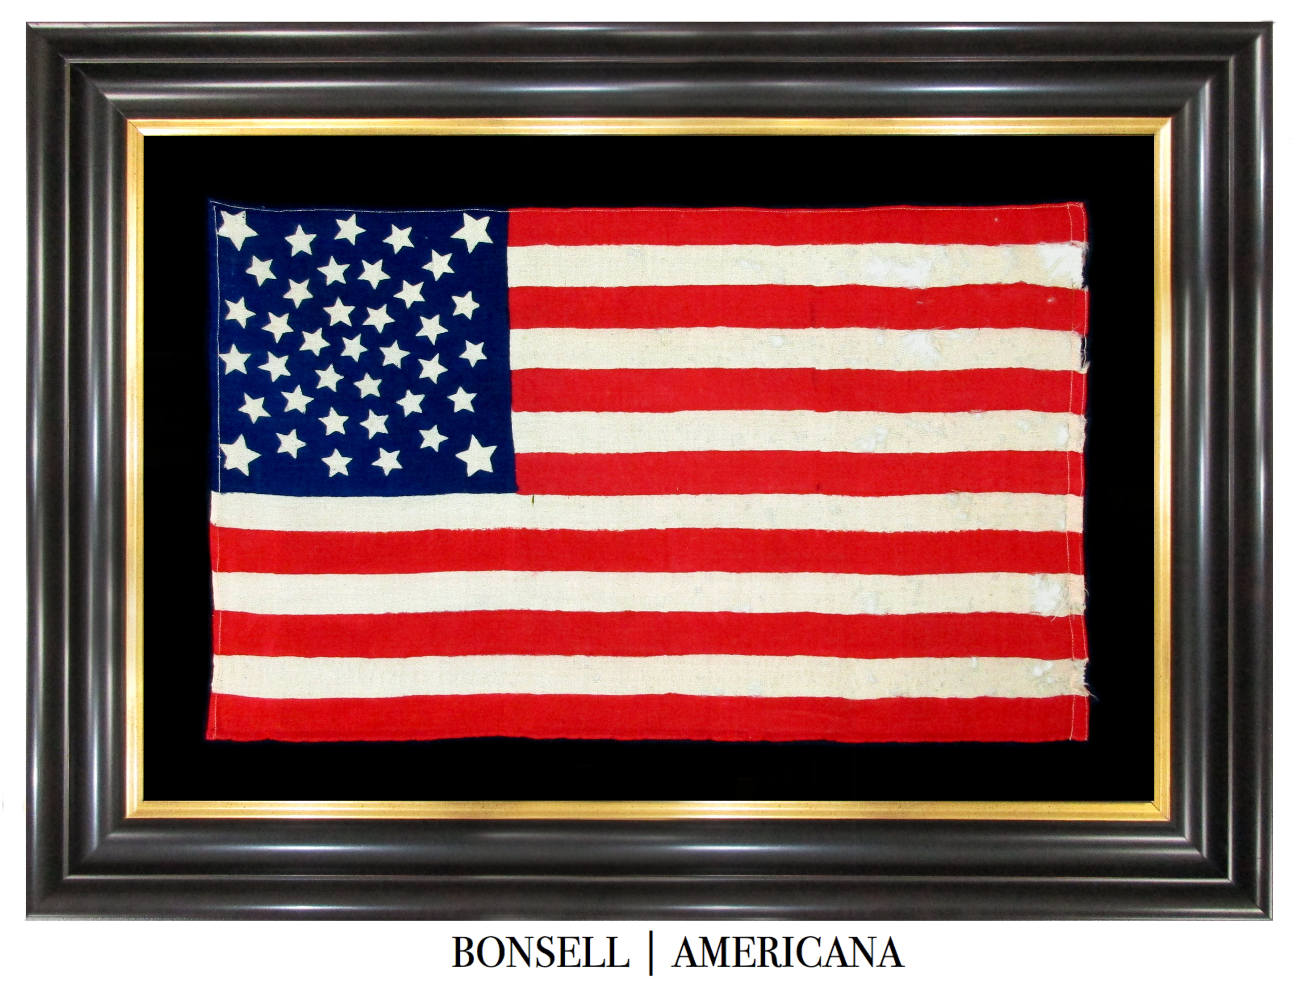 38 Star Antique Flag with a Fantastic Medallion Pattern